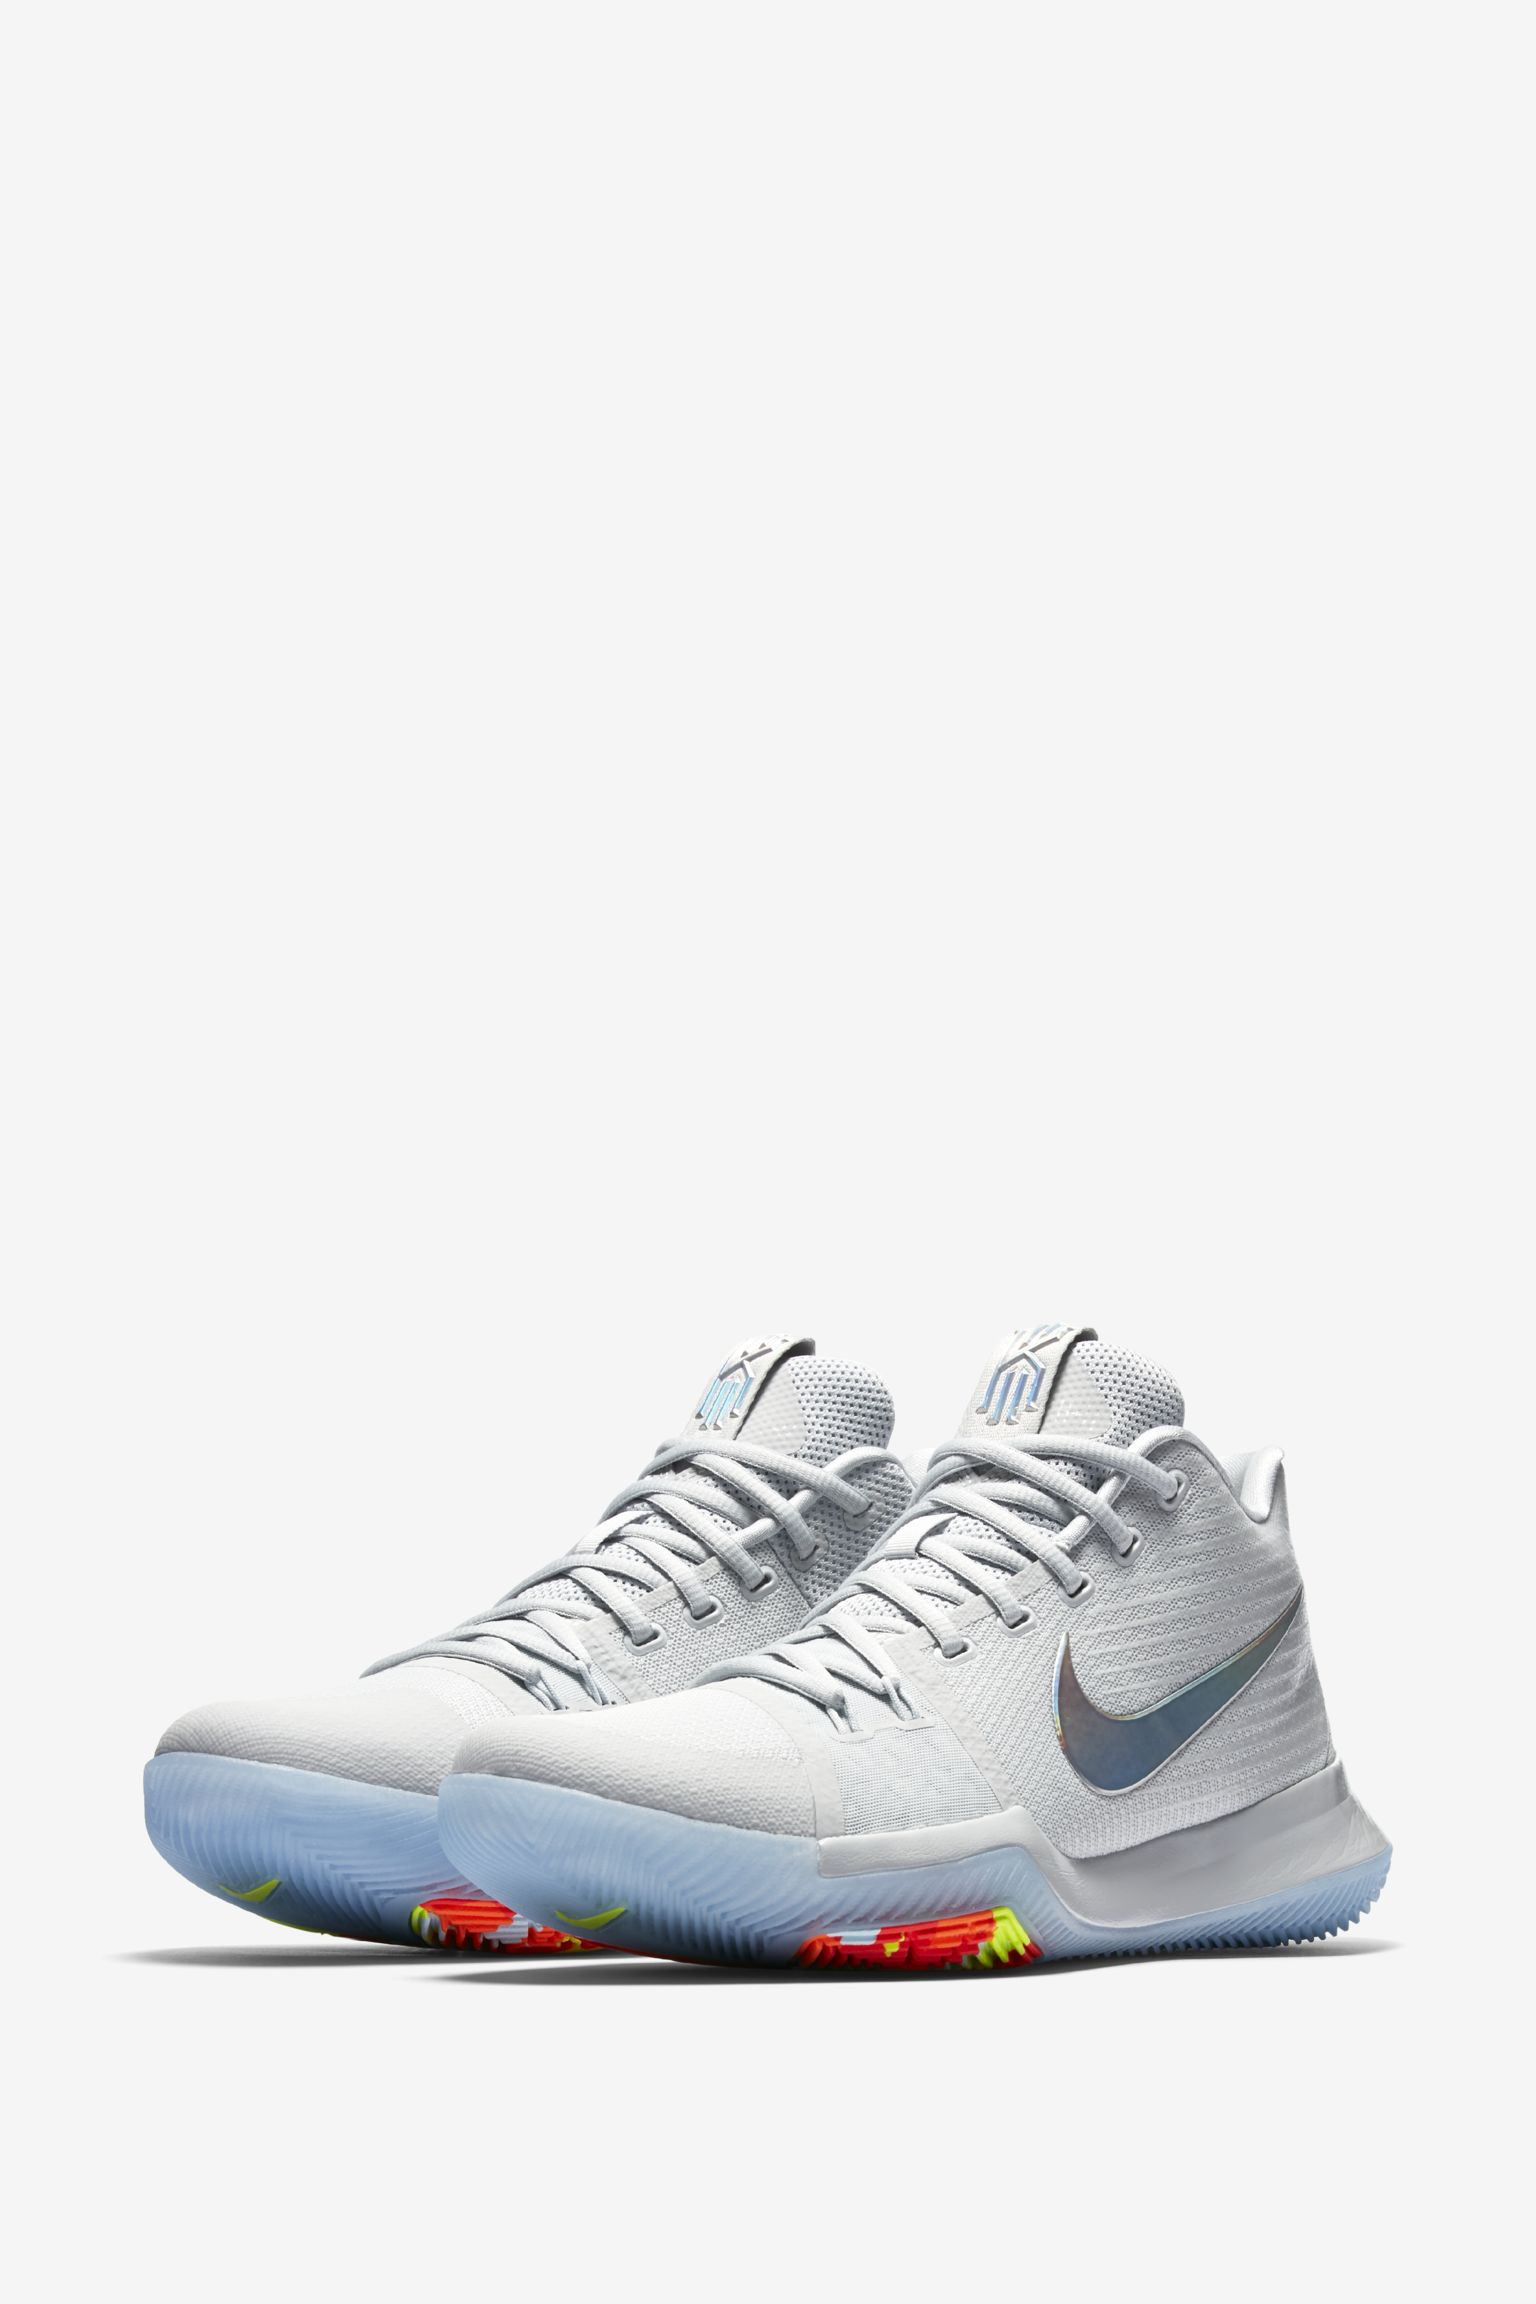 best service 608dc 7e186 Nike Kyrie 3 : Nike Sneakers Online at Best Prices ...